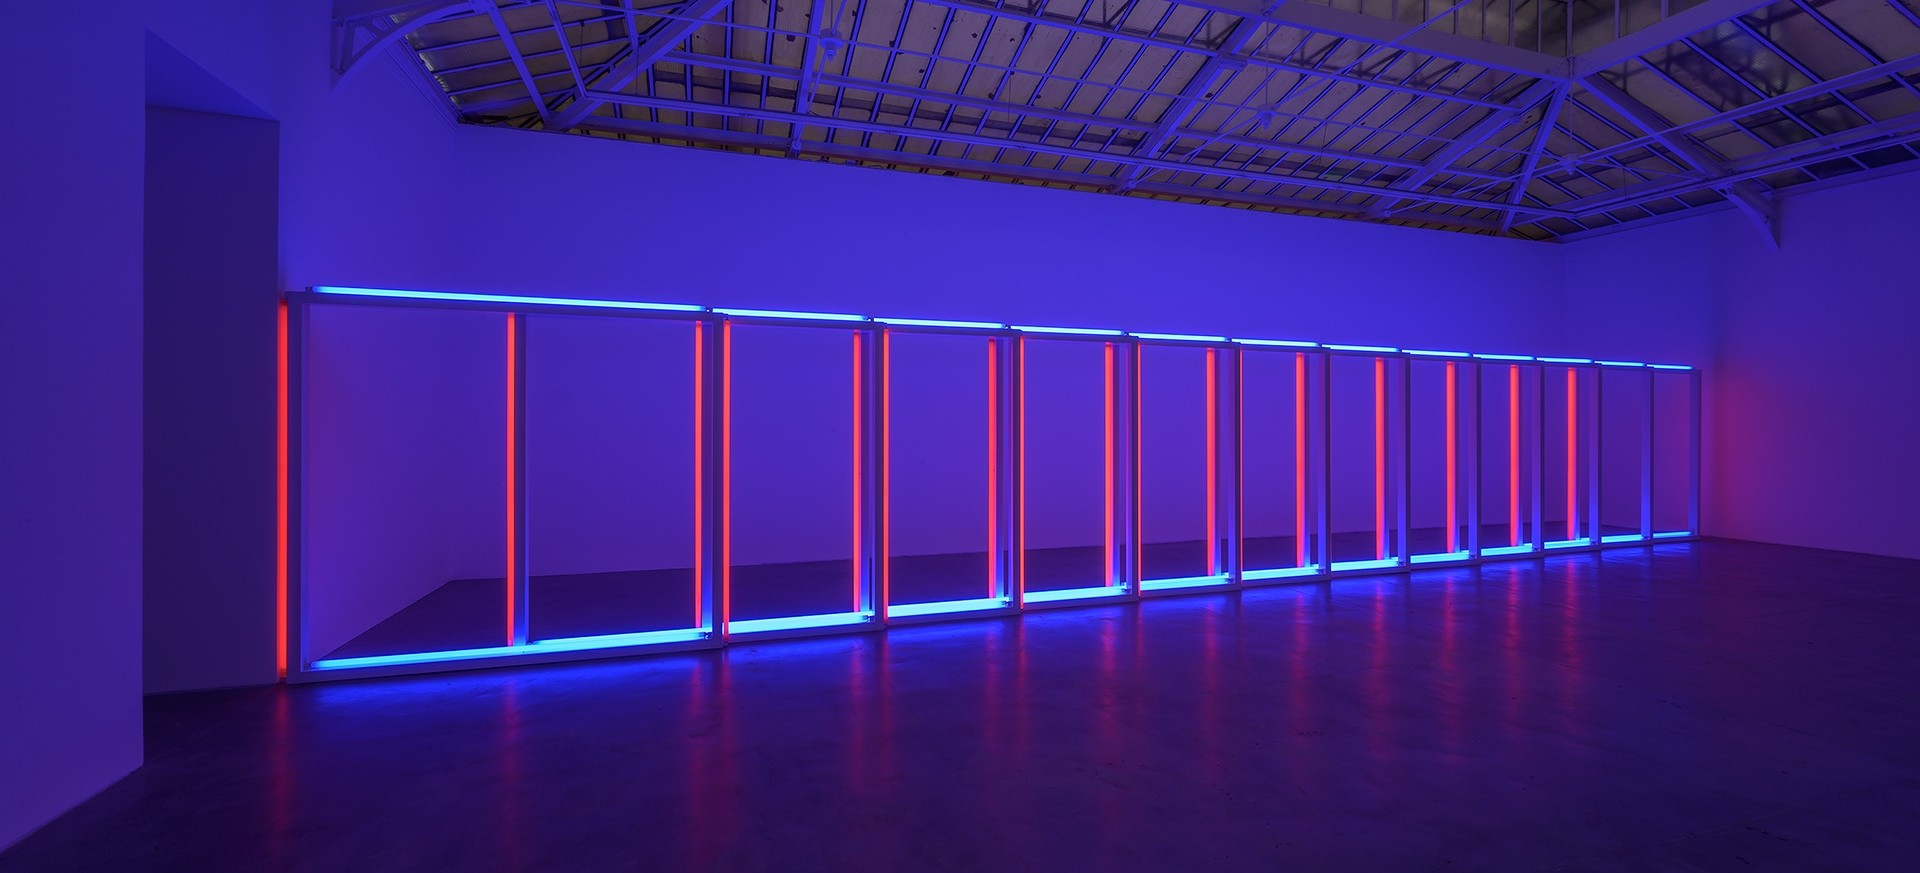 Dan Flavin, untitled, 1970. Installation view, David Zwirner, Paris, 2019